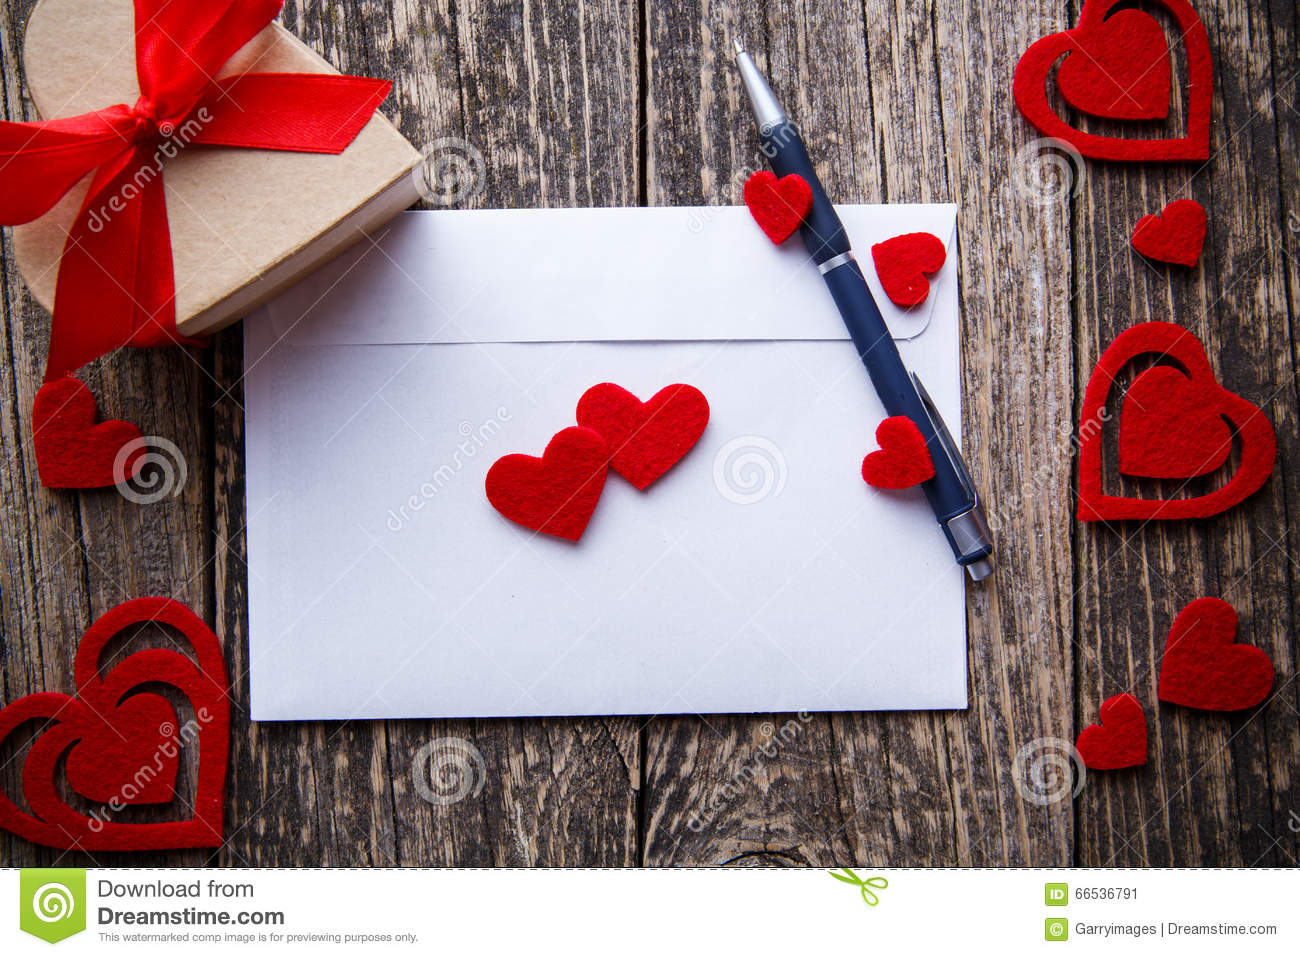 Gift For Girlfriend On Valentine S Day Stock Image Image Of Card